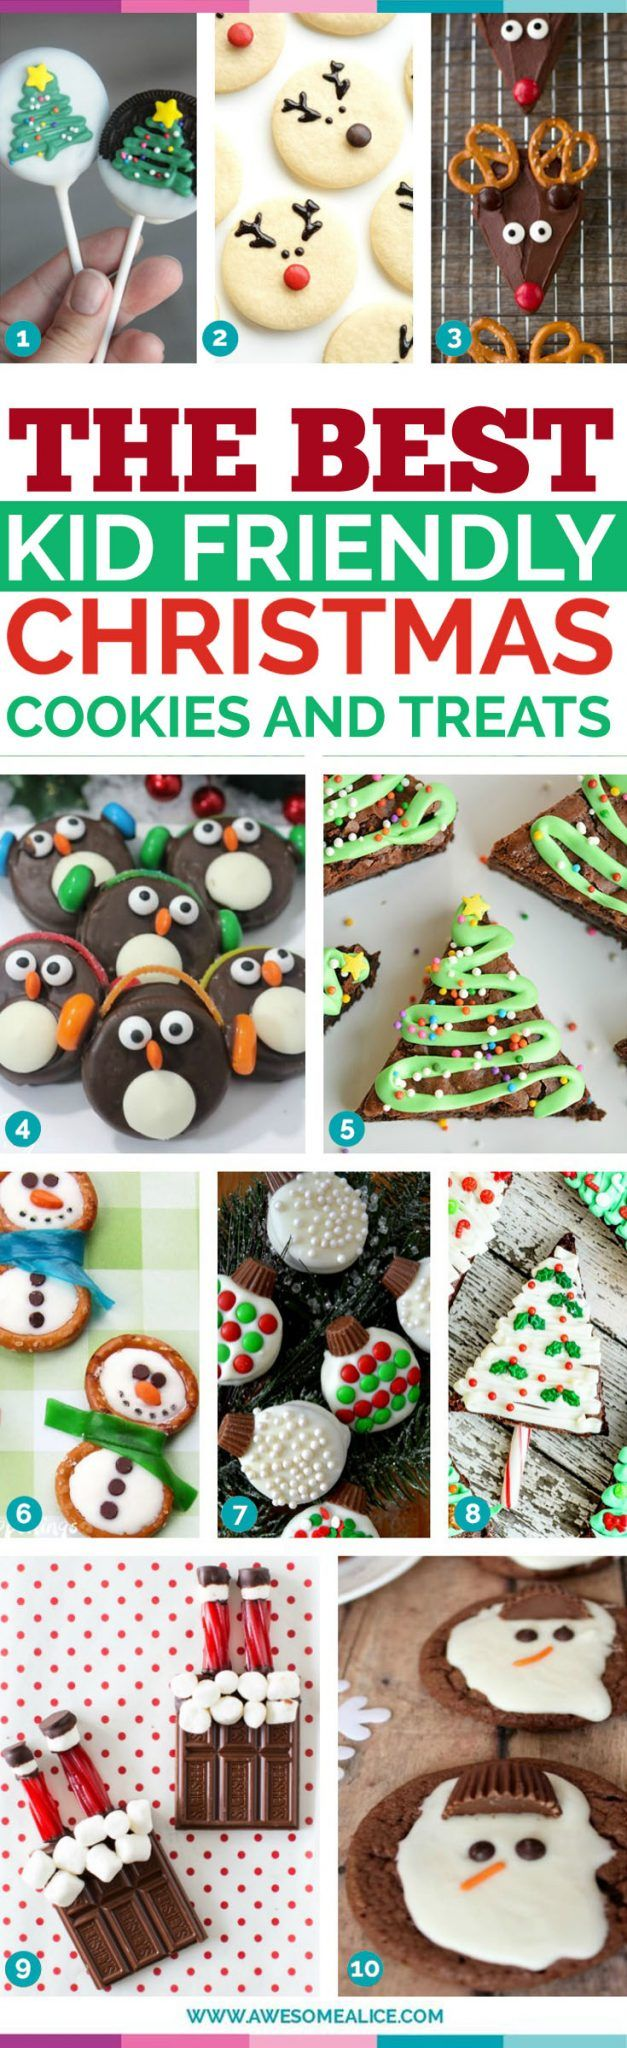 The best kid friendly christmas cookies and treats. 29 fun and easy Christmas cookie ideas for kids! These creative recipes are so simple and easy to make, but are sure to make Christmas day extra special. Everything from no-bake recipes to brownies and sugar cookies! #christmas #christmasrecipe #holidaycookies #santacookies www.AwesomeAlice